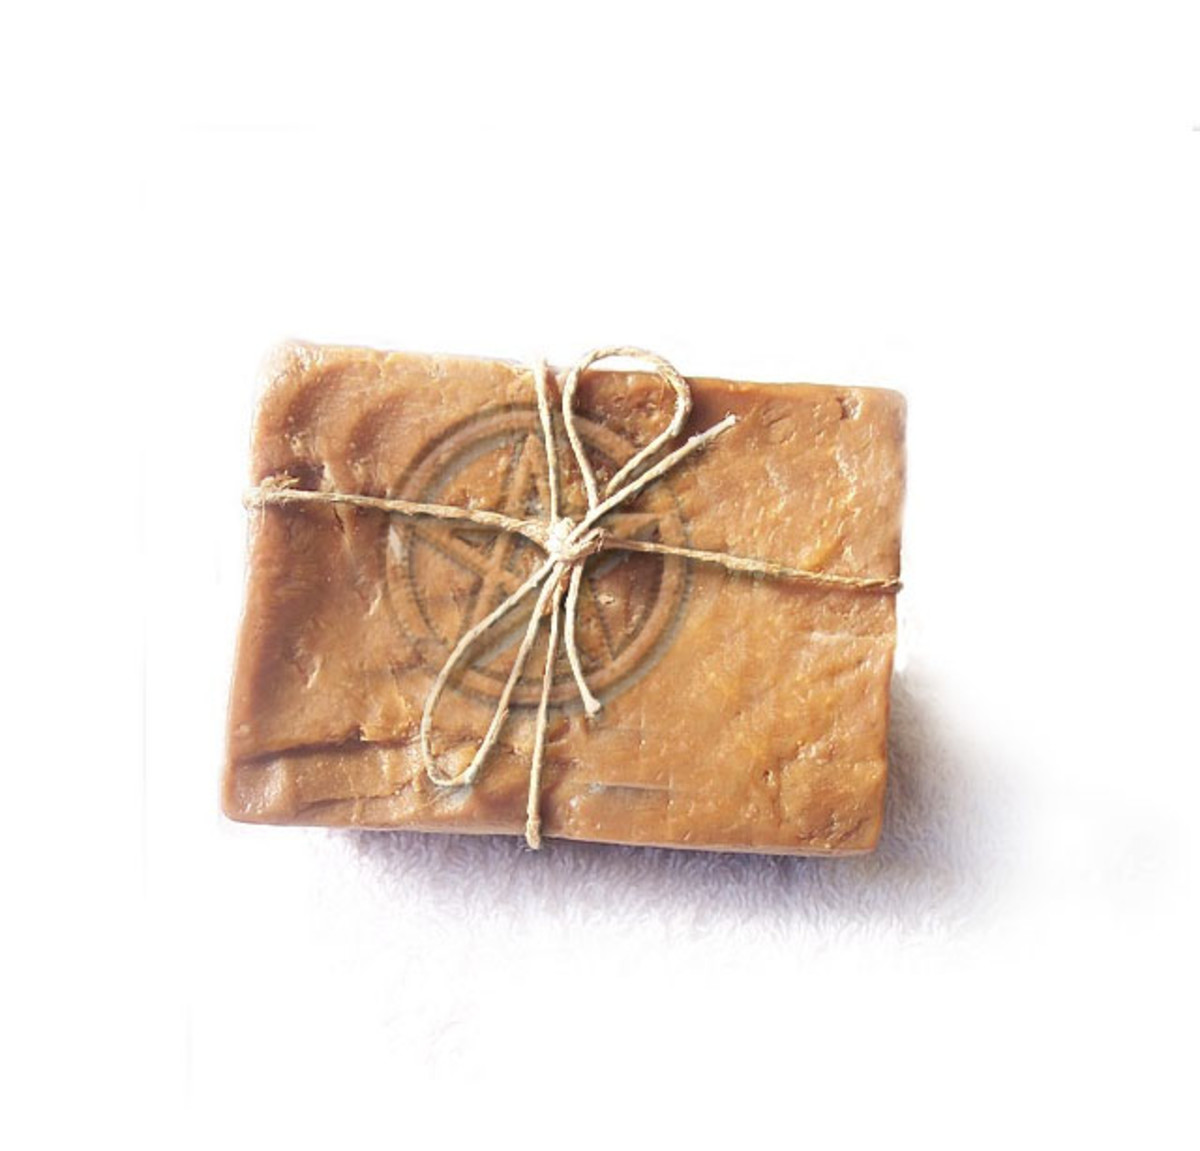 imbolc-witch-crafts-hand-milled-imbolc-purification-soap